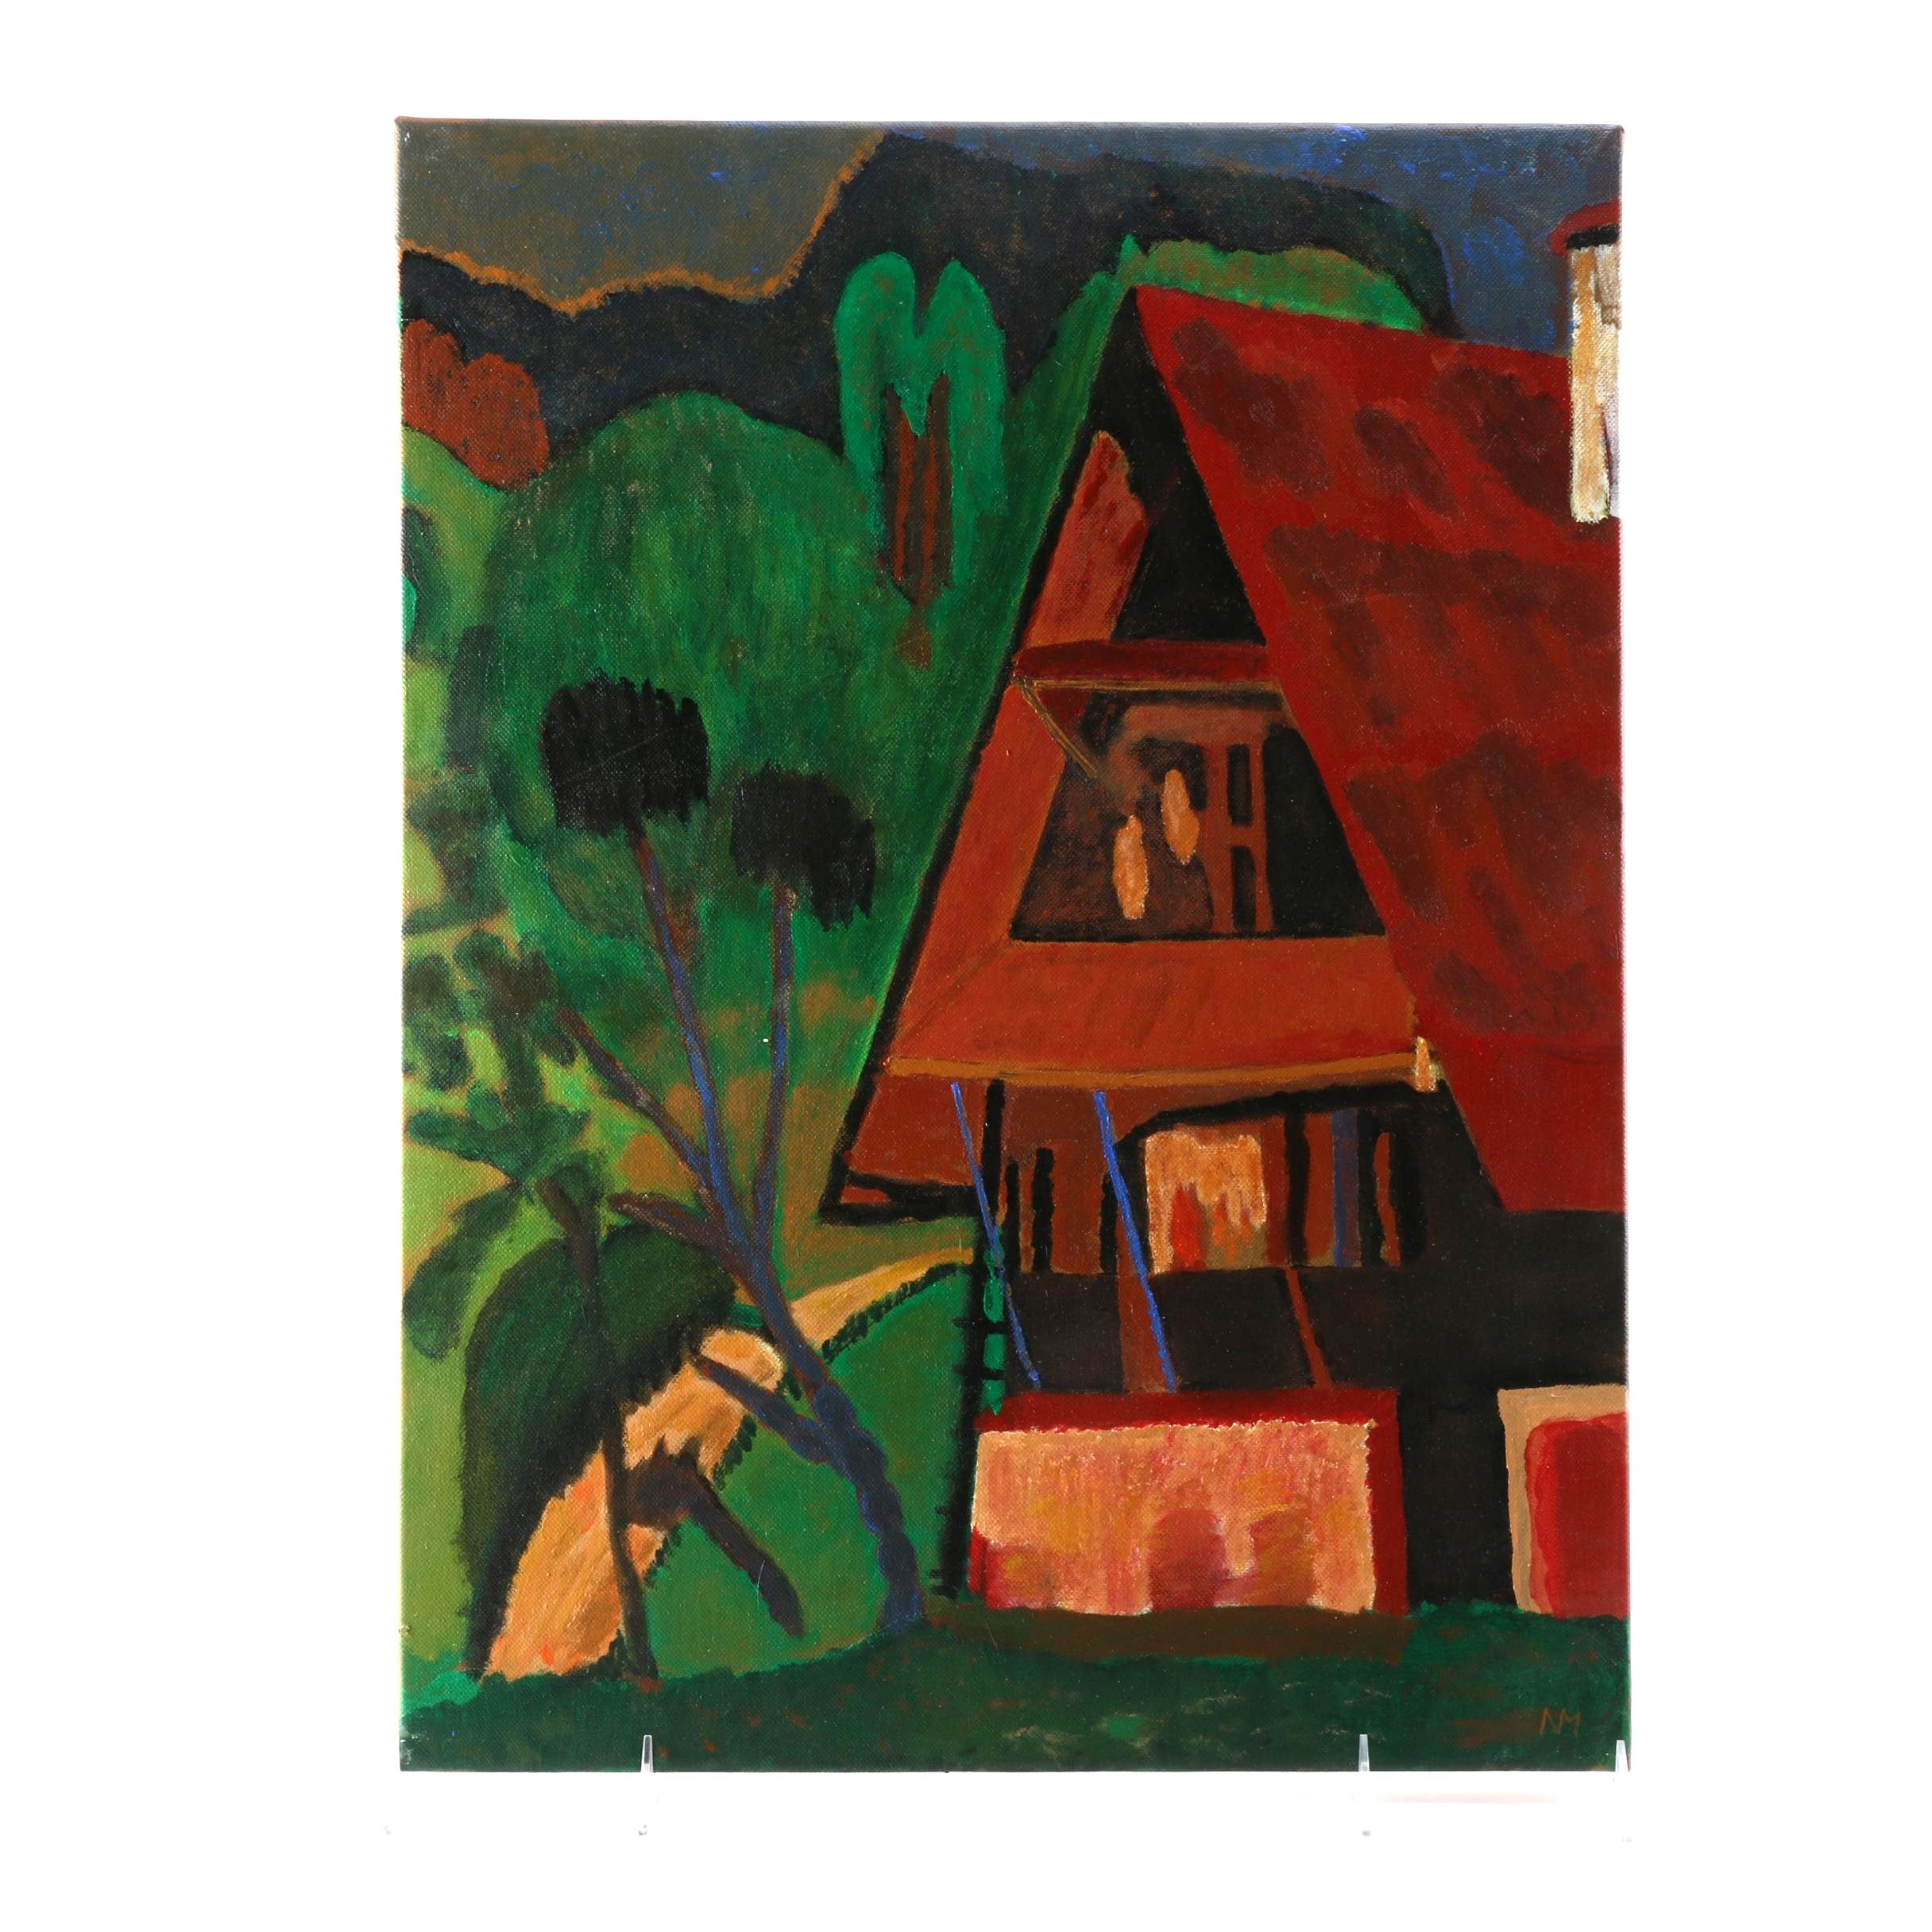 Original Signed Oil Painting of a House in the Woods